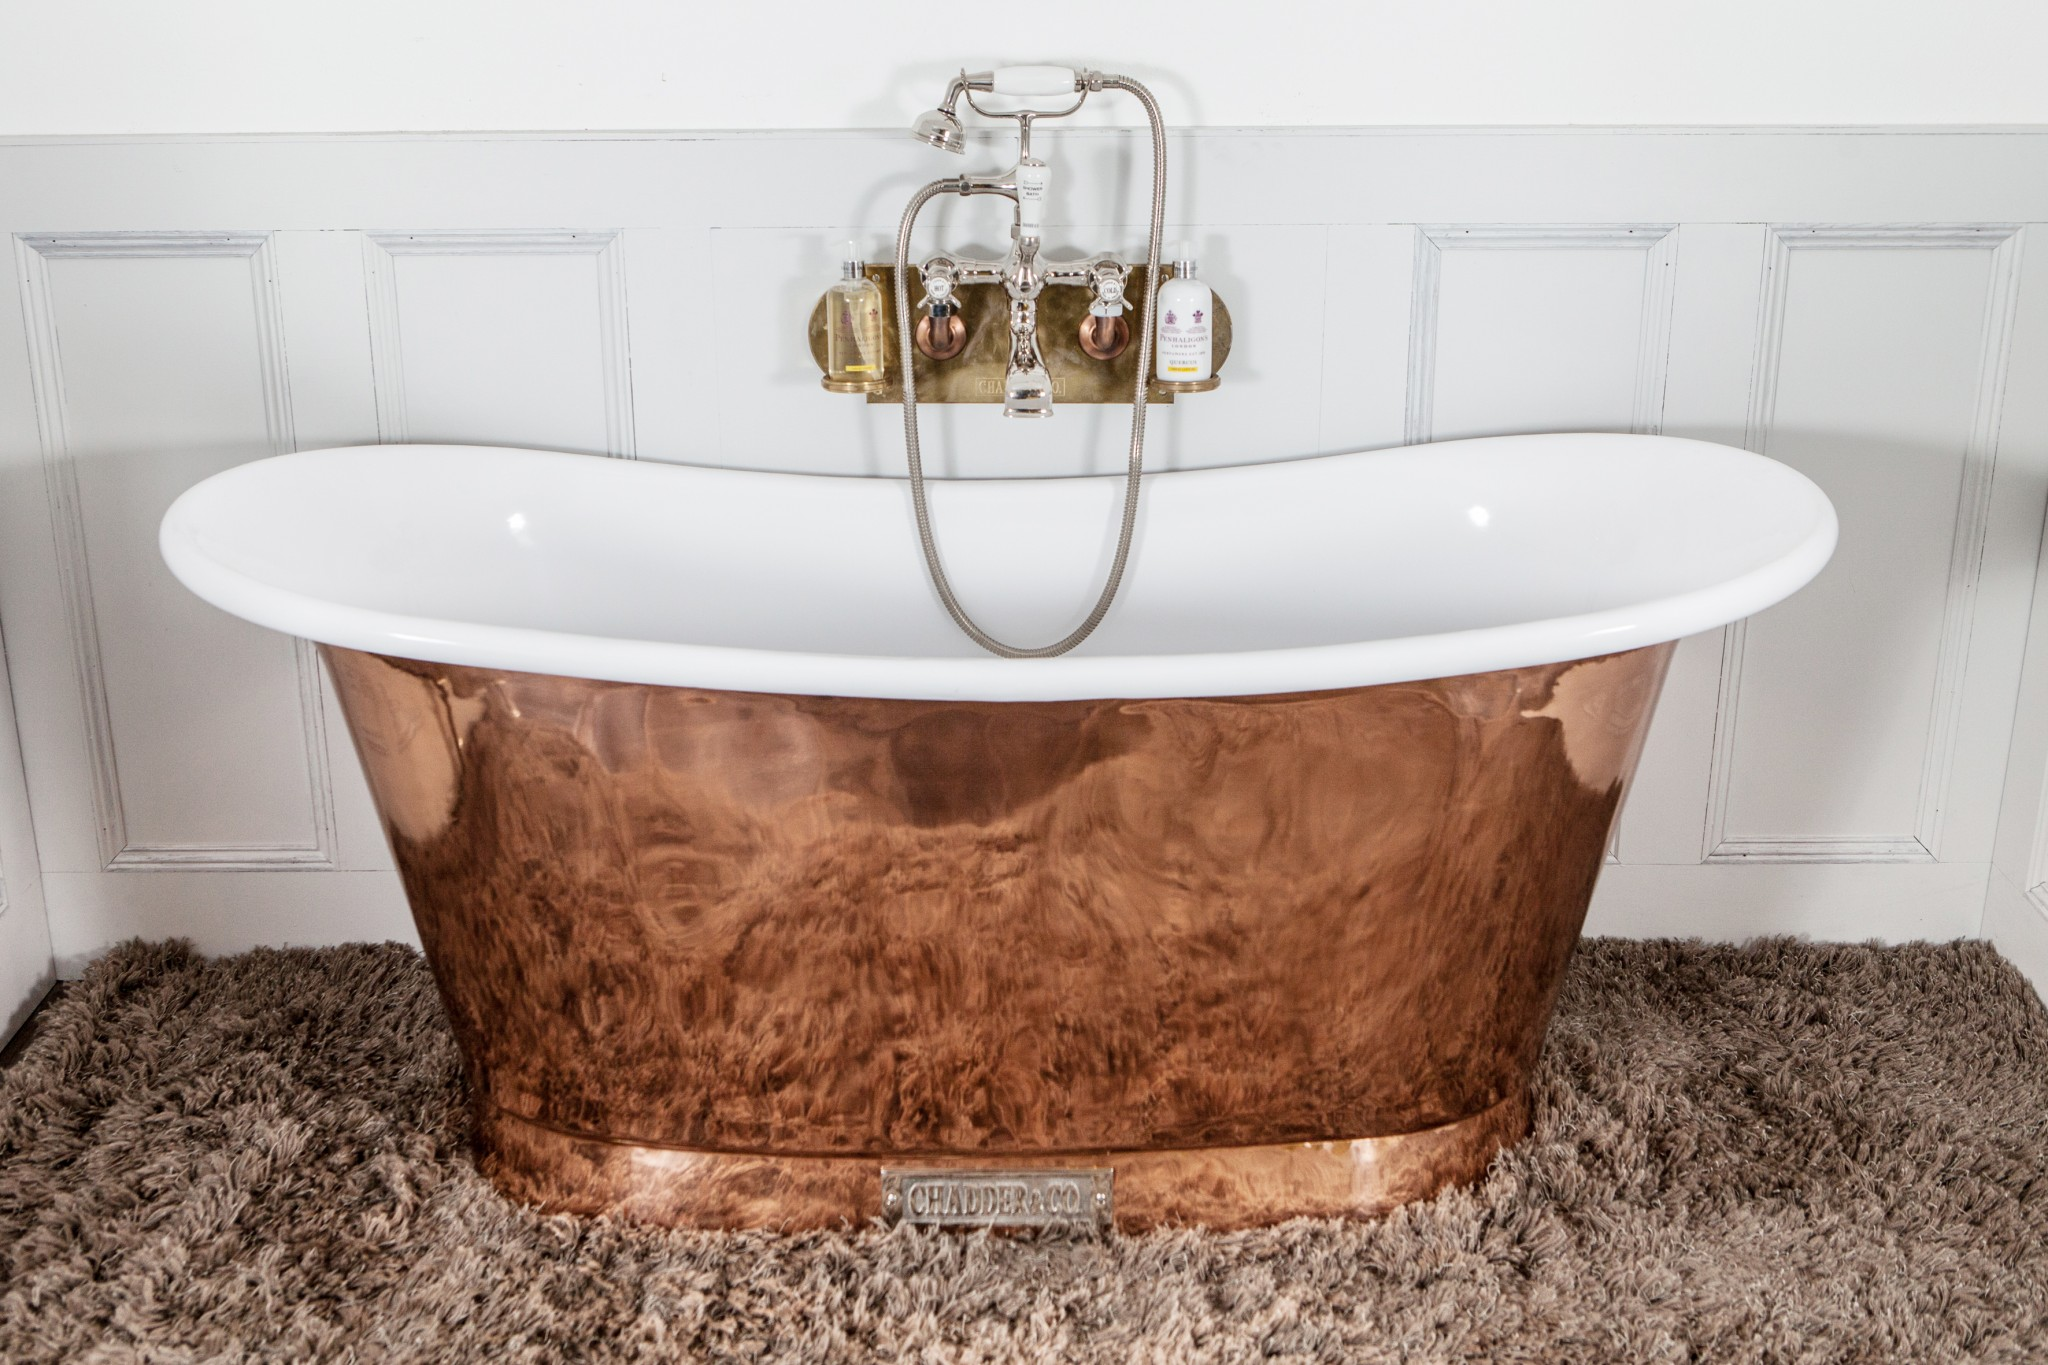 Royal Copper Bath with White Interior. | Chadder & Co.